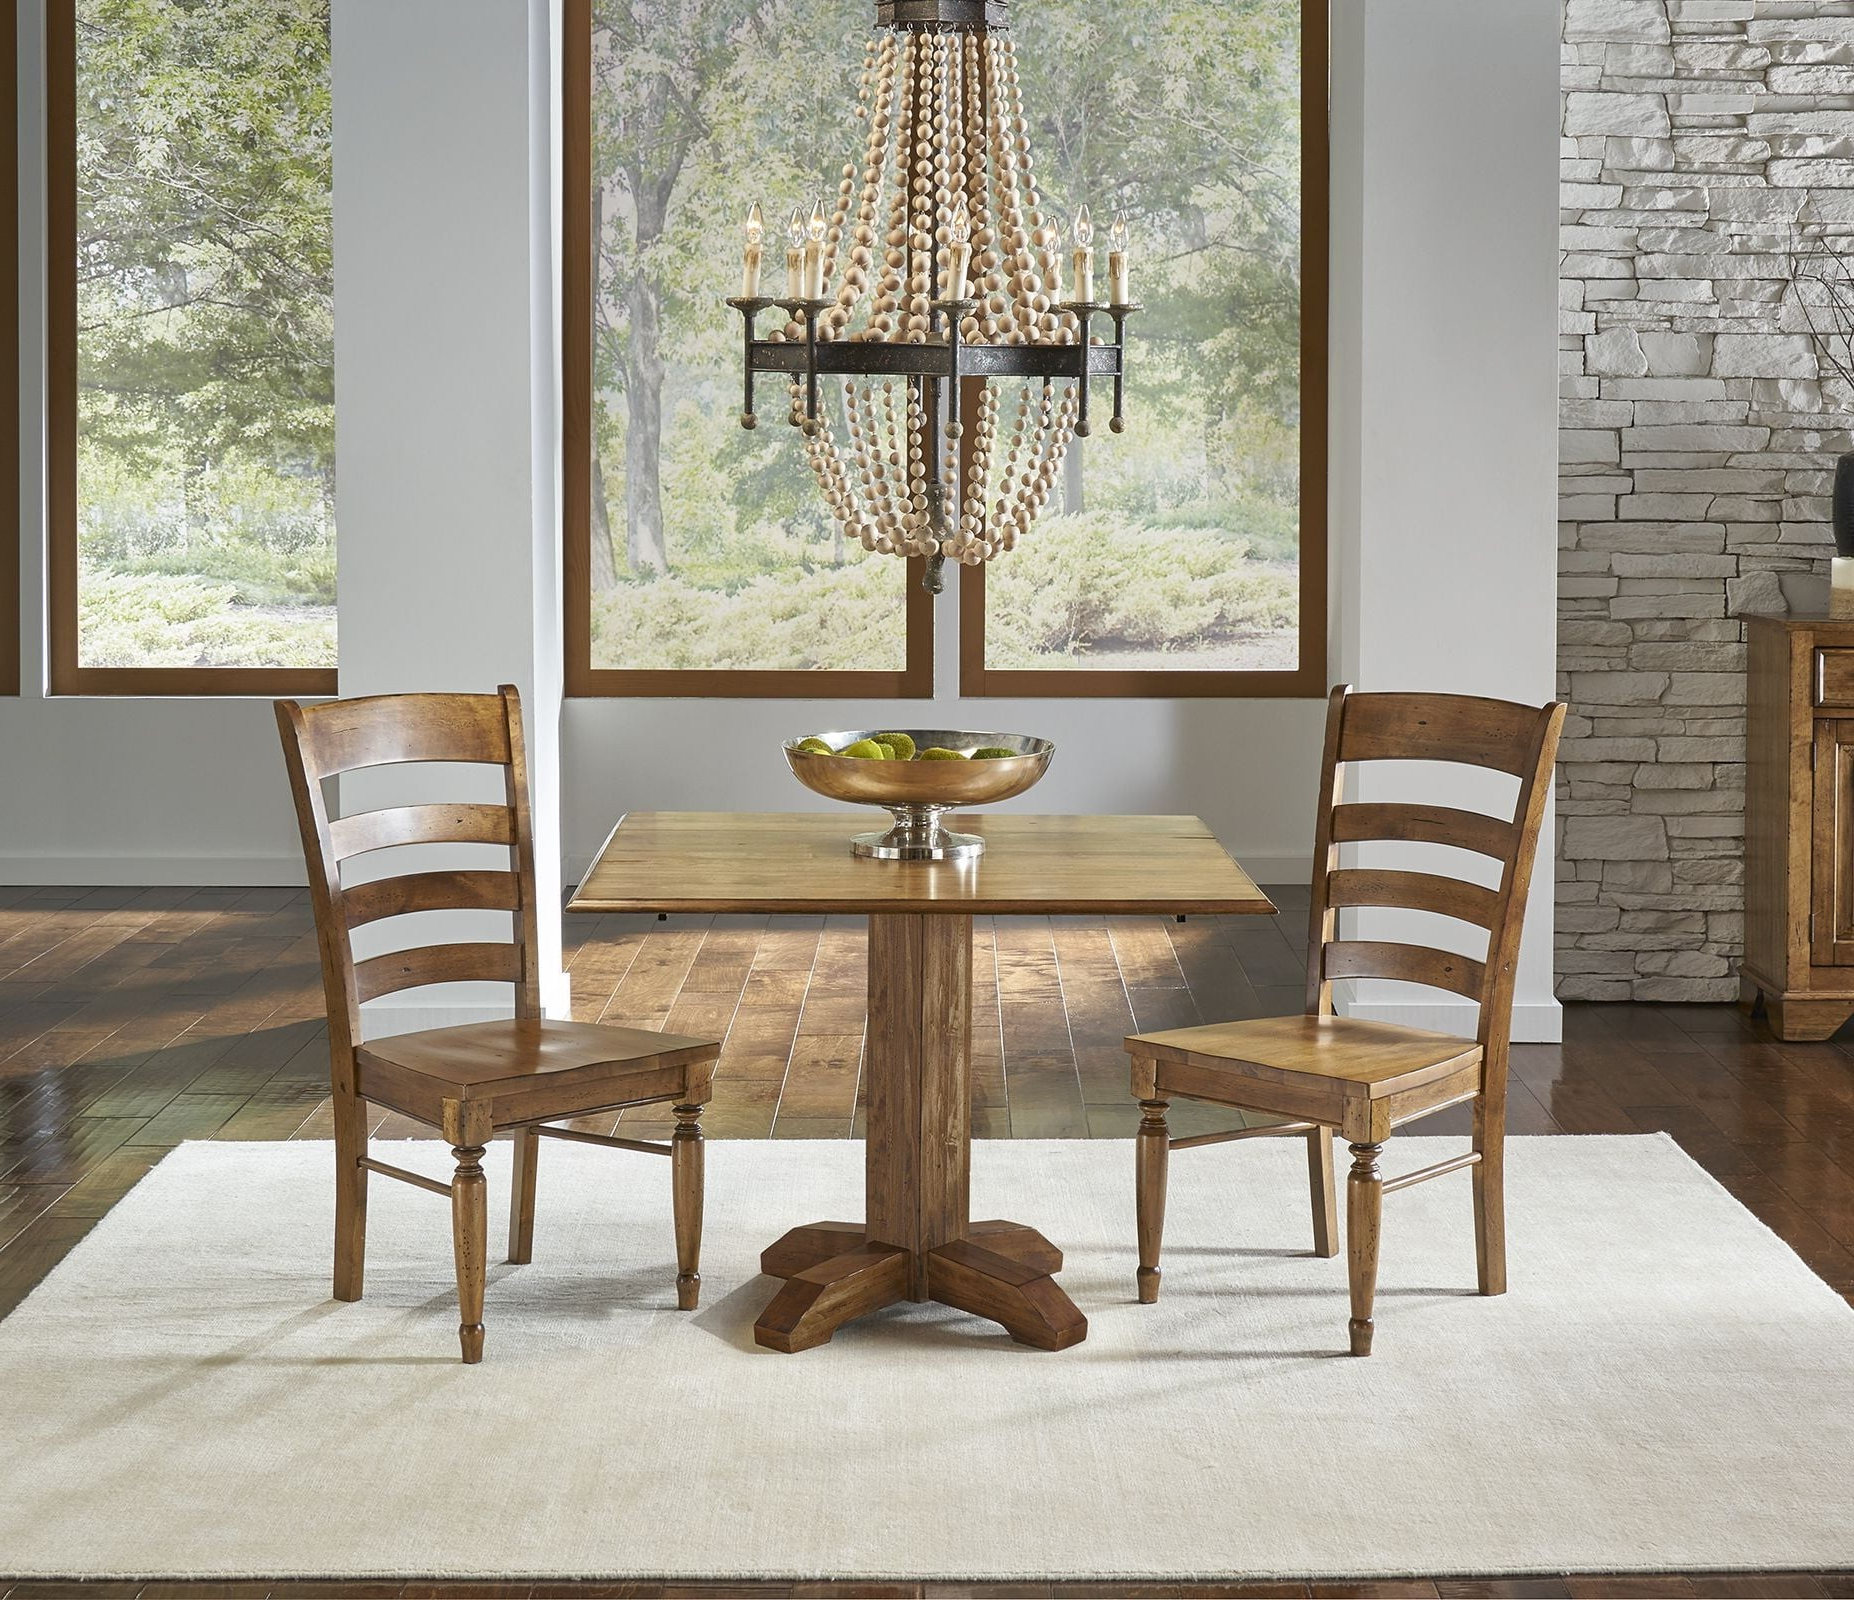 "Best And Newest Bennett Smoky Quartz 42"" Drop Leaf Square Dining Table Within Transitional 4 Seating Double Drop Leaf Casual Dining Tables (View 21 of 30)"